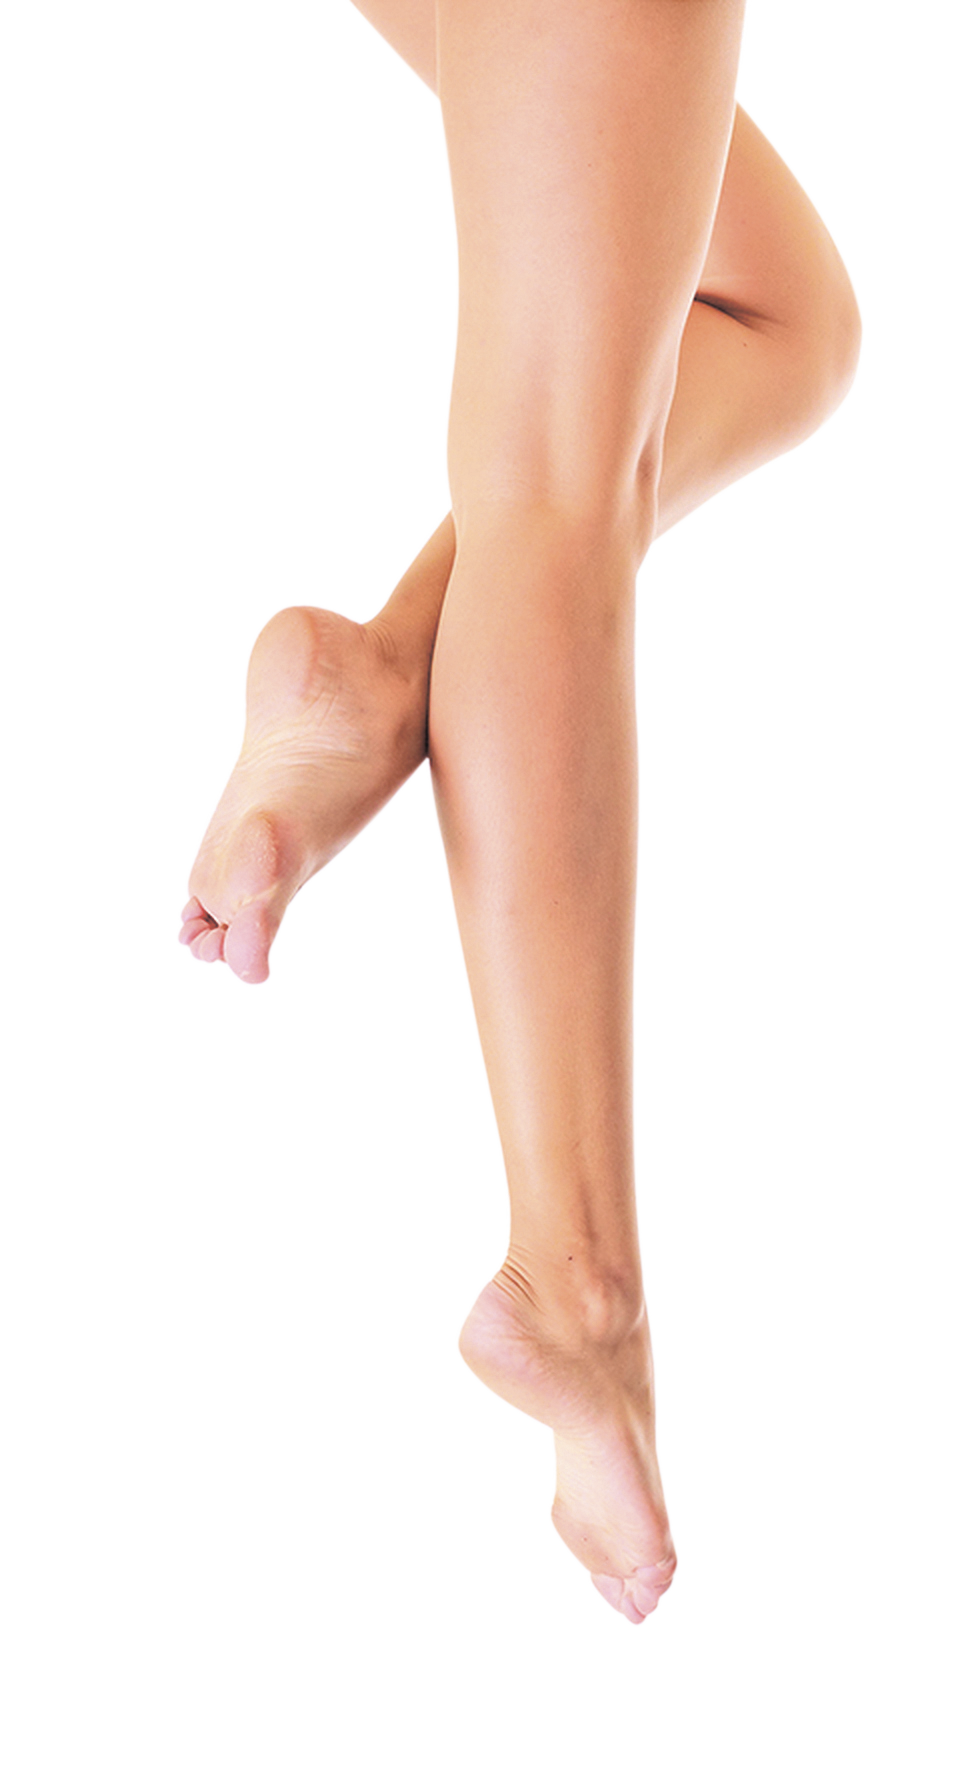 Legs clipart ankle joint. Women png image purepng